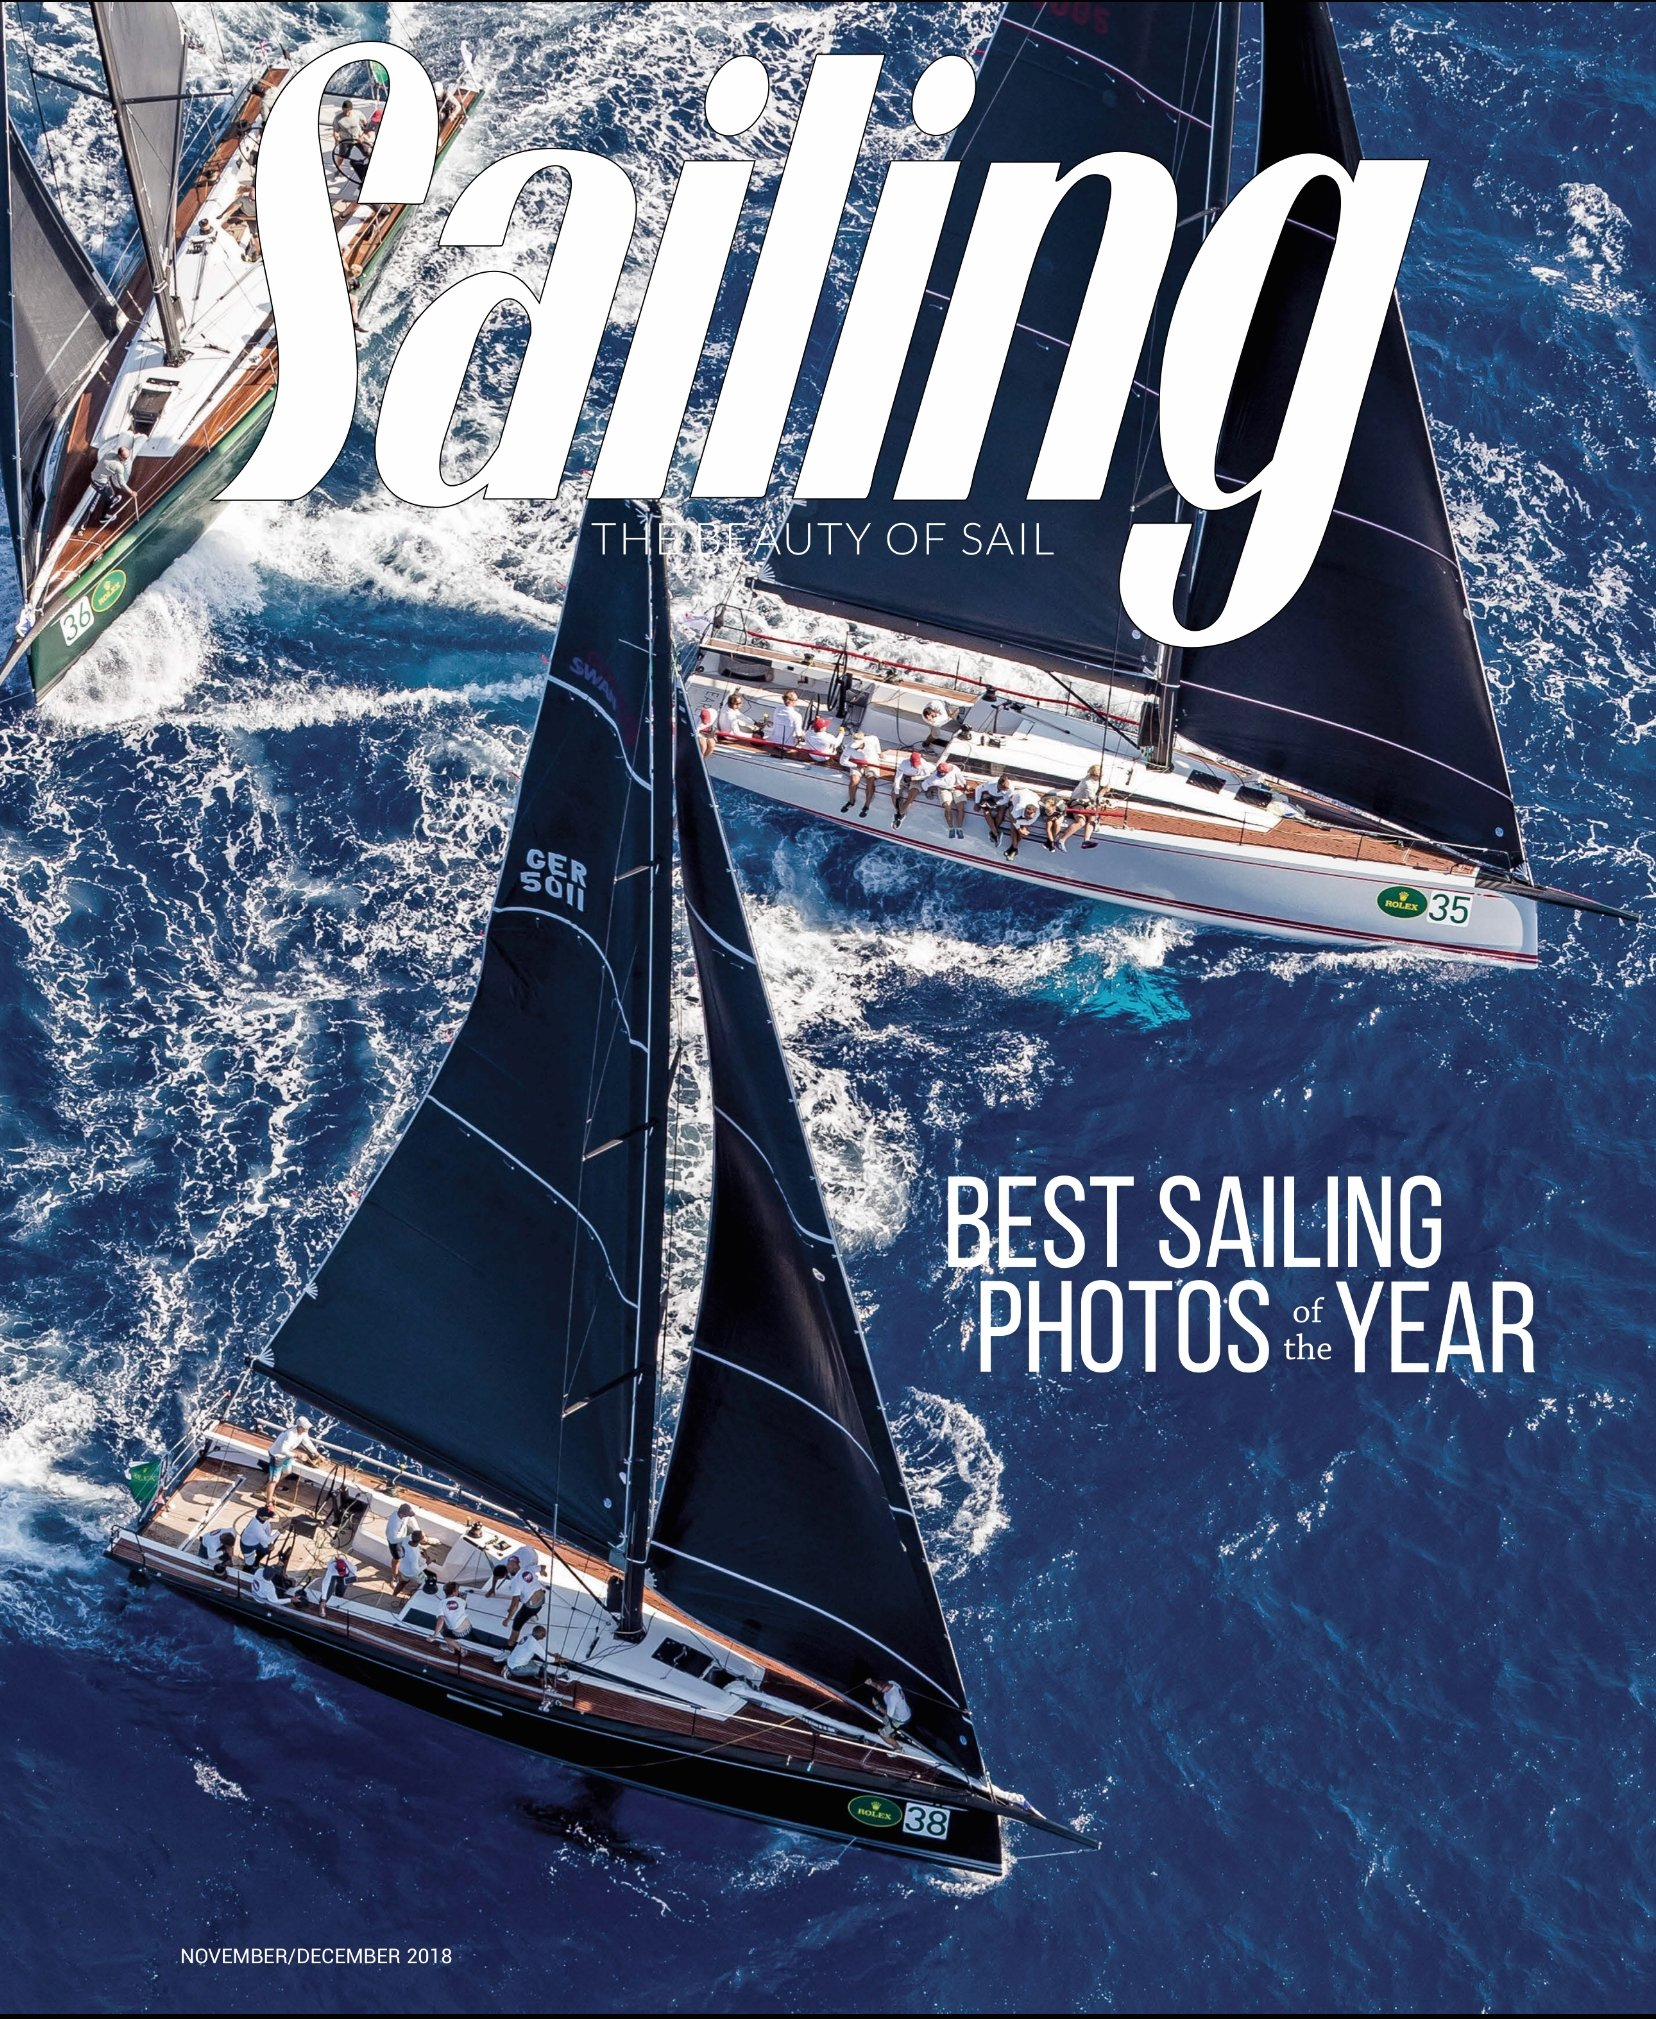 Sailing Magazine - November/December 2018 Perry Design Review of the Hylas 48